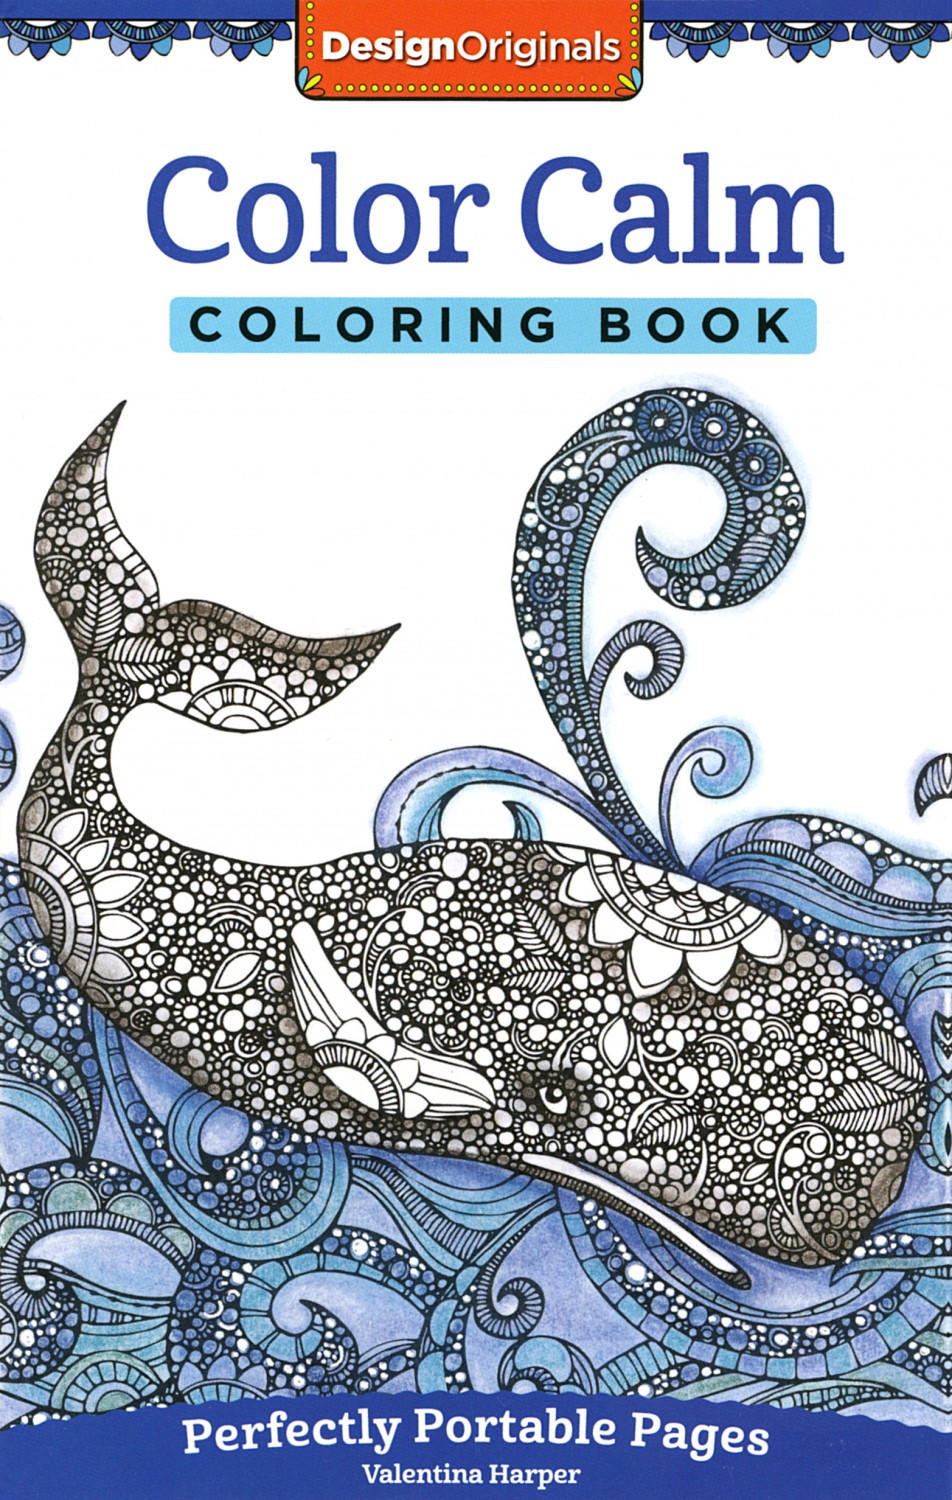 Design Originals Color Calm Perfectly Portable Coloring And Activity Book By Valentina Harper Full Size